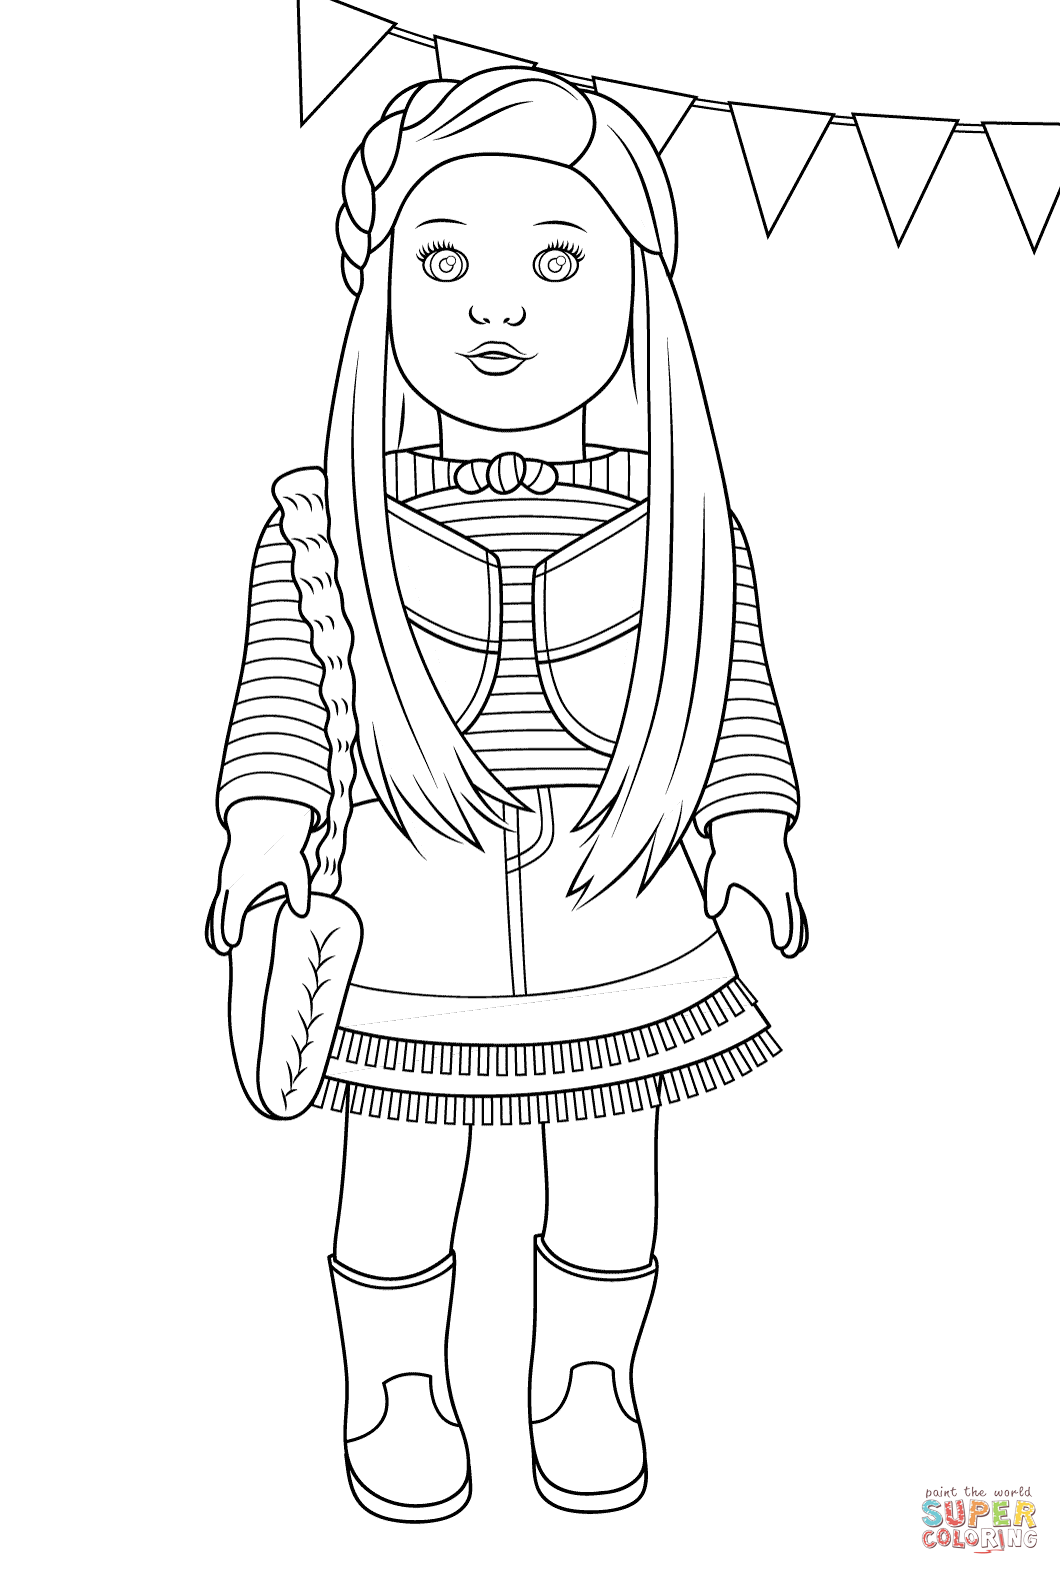 american girl doll coloring page my cup overflows kit kittredge an american girl girl american page doll coloring